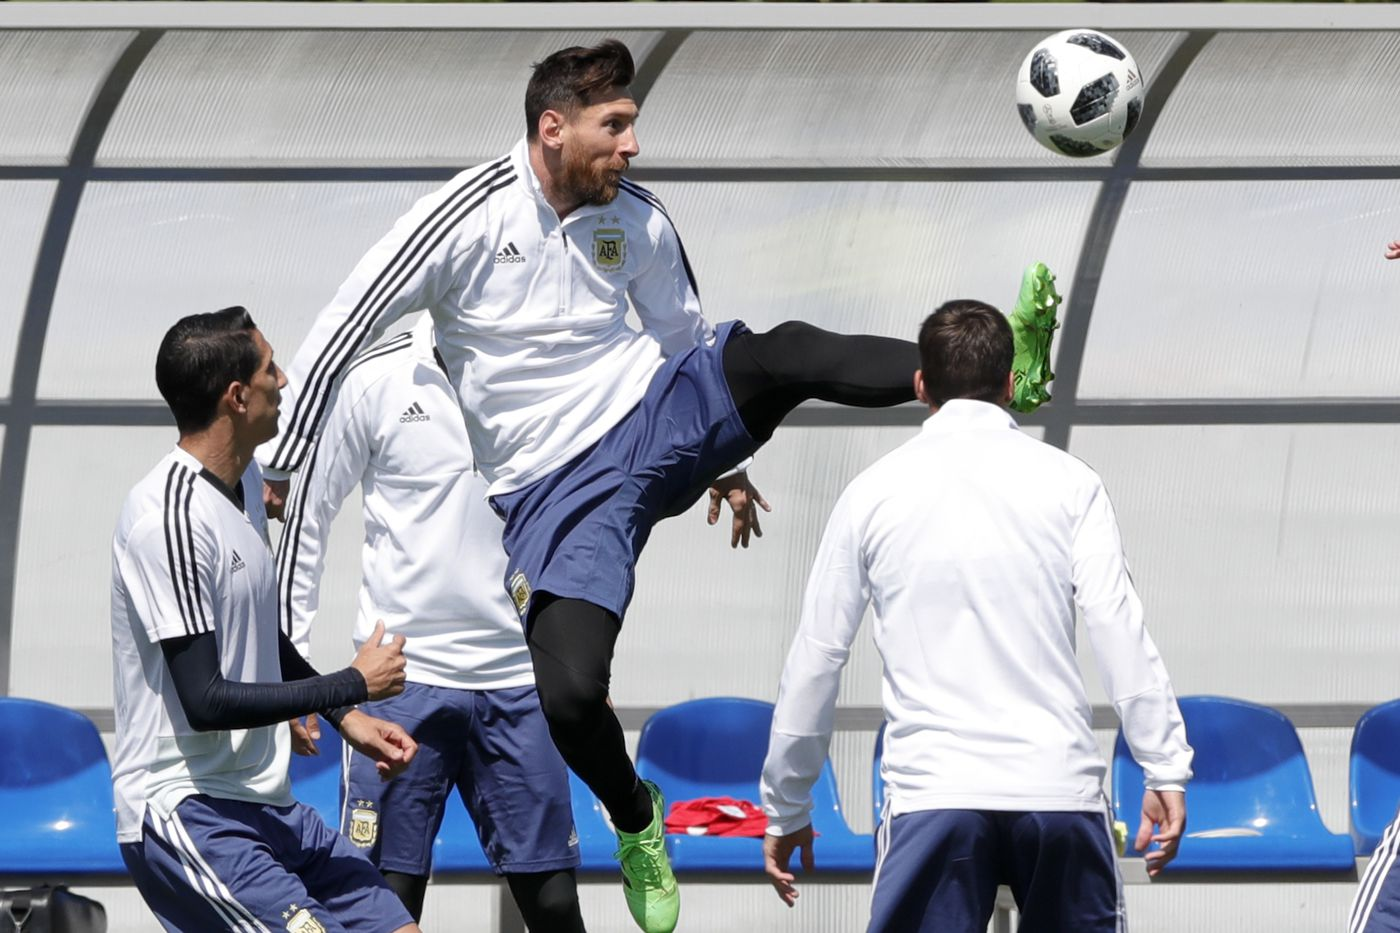 World Cup schedule: Lionel Messi, Argentina take on Iceland to highlight June 16 games